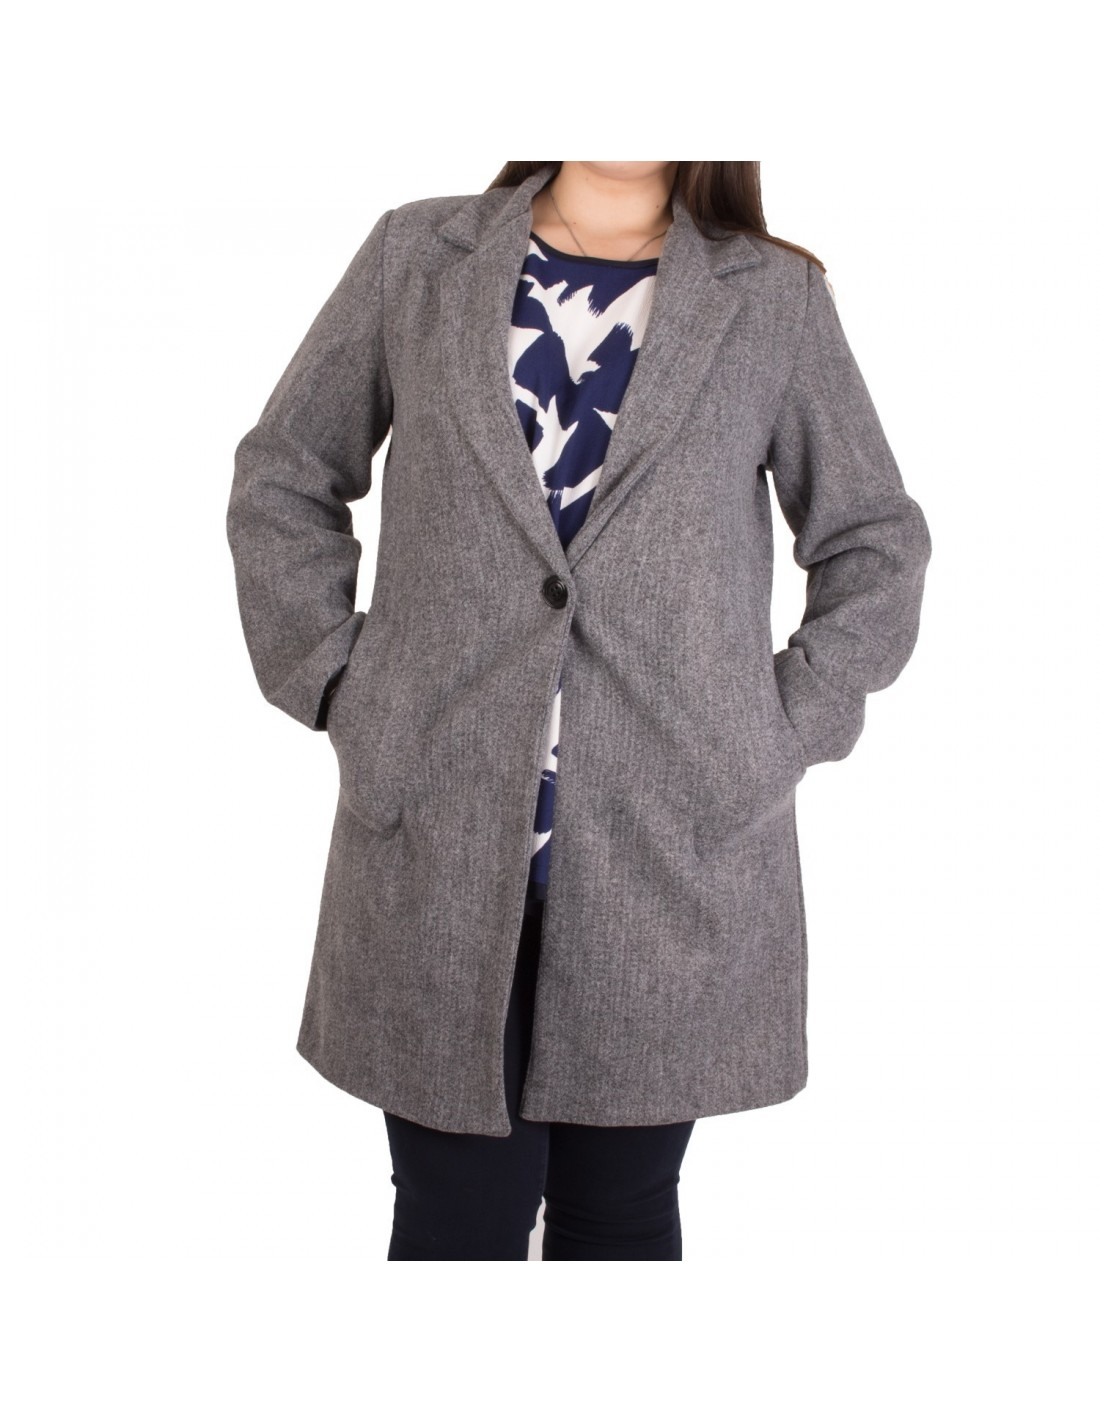 Veste fausse fourrure femme pull and bear